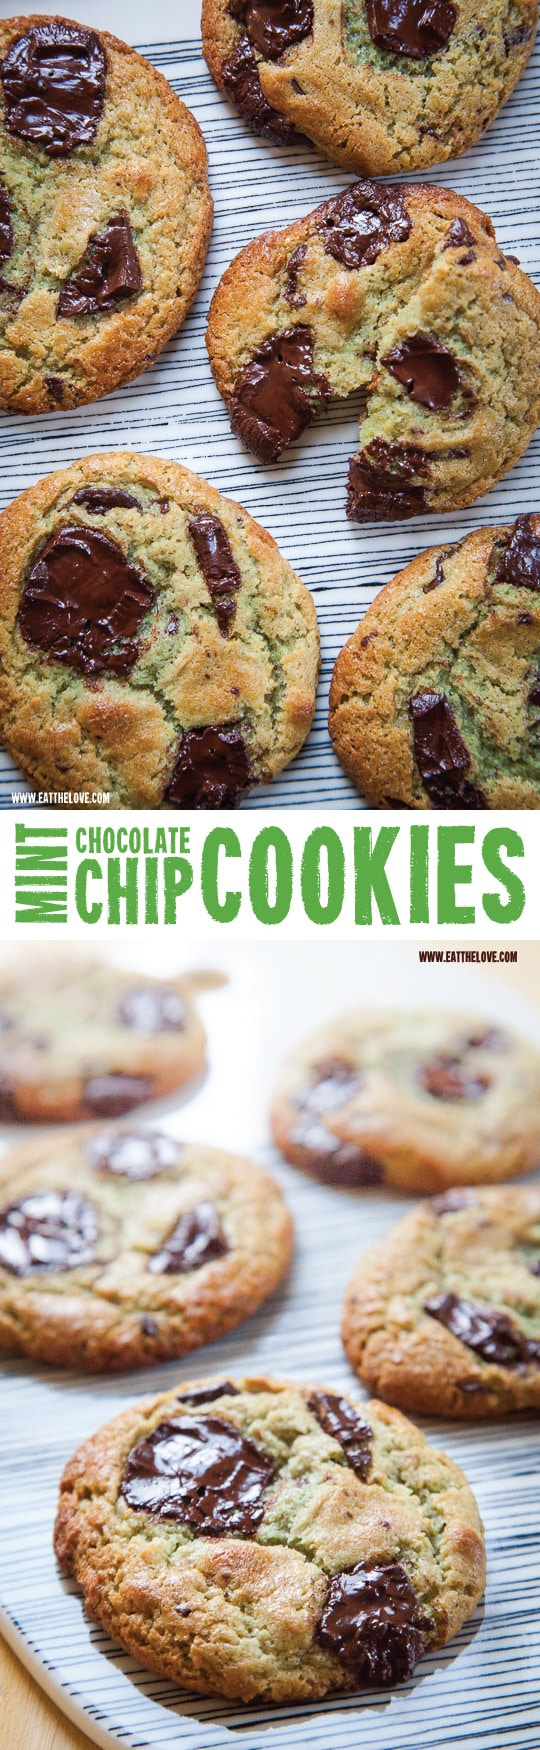 Mint Chocolate Chip Cookies - Eat The Love